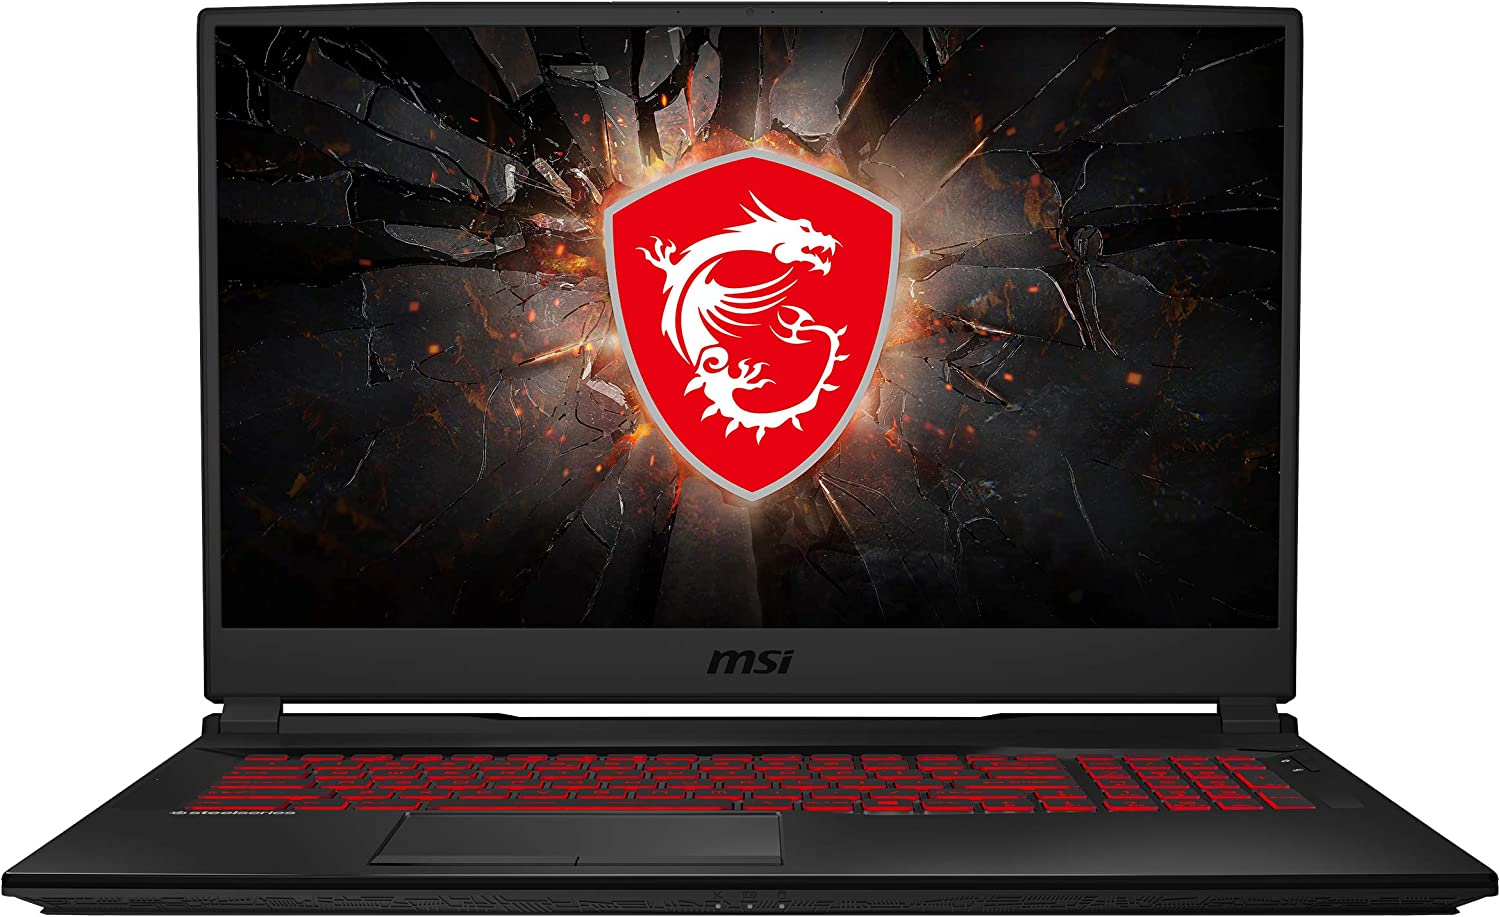 817sGBtubYL. AC SL1500 10 Best Gaming Laptops for Rust in 2021 Reviews